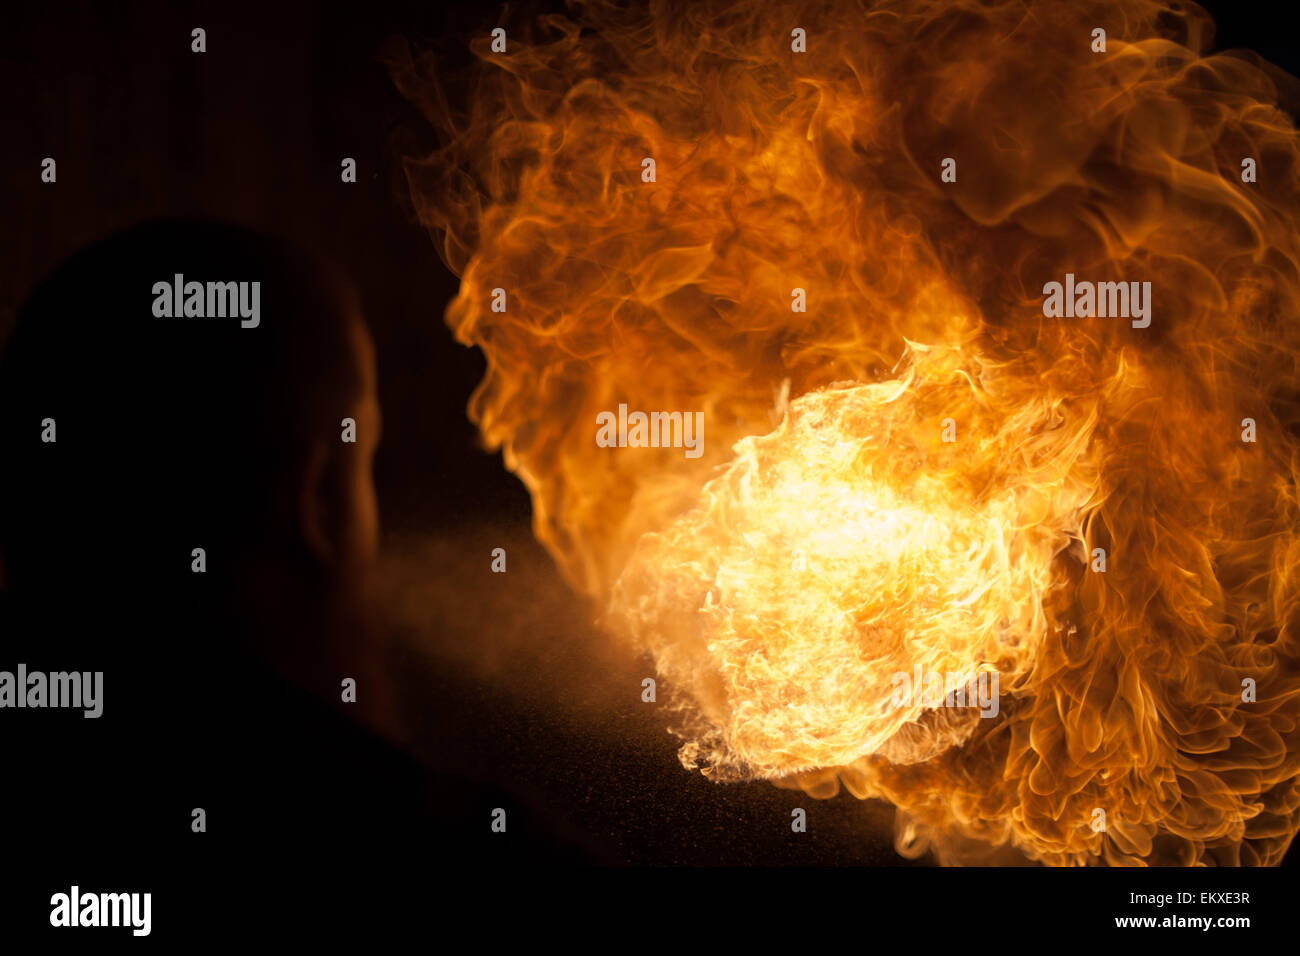 a fire breathe with a silhouetted performer figure - Stock Image